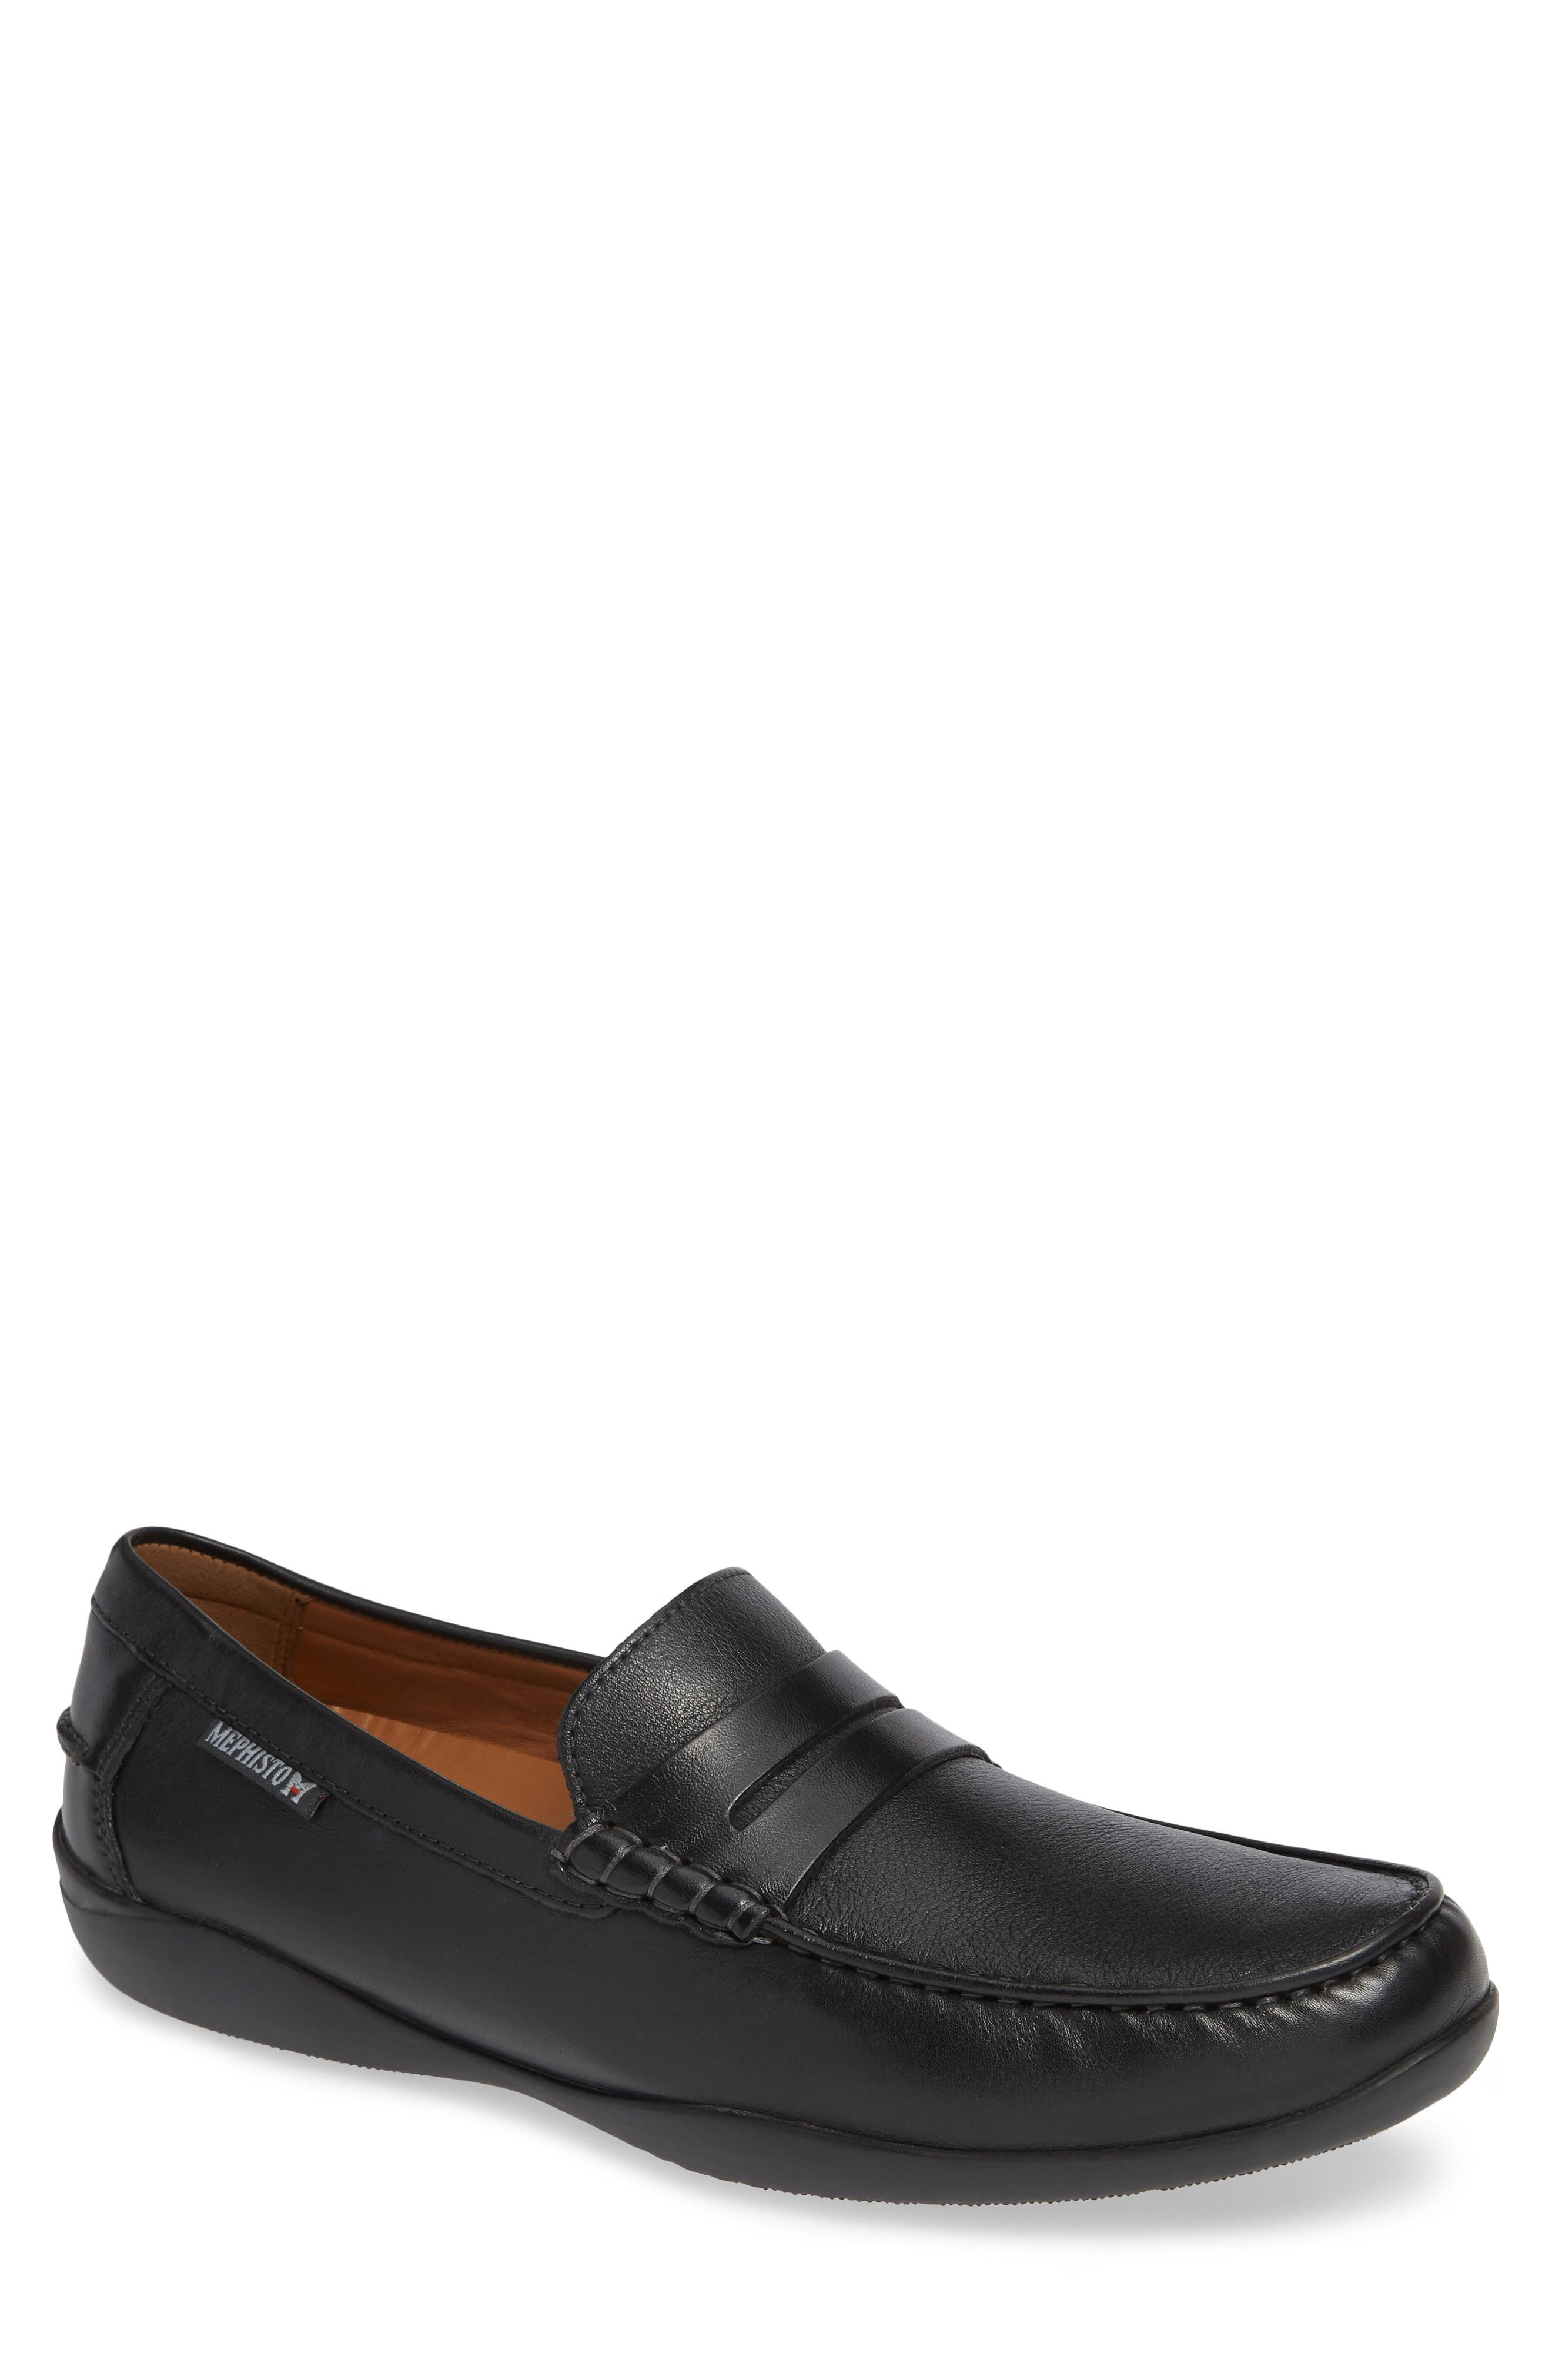 Igor Penny Loafer,                         Main,                         color, 001